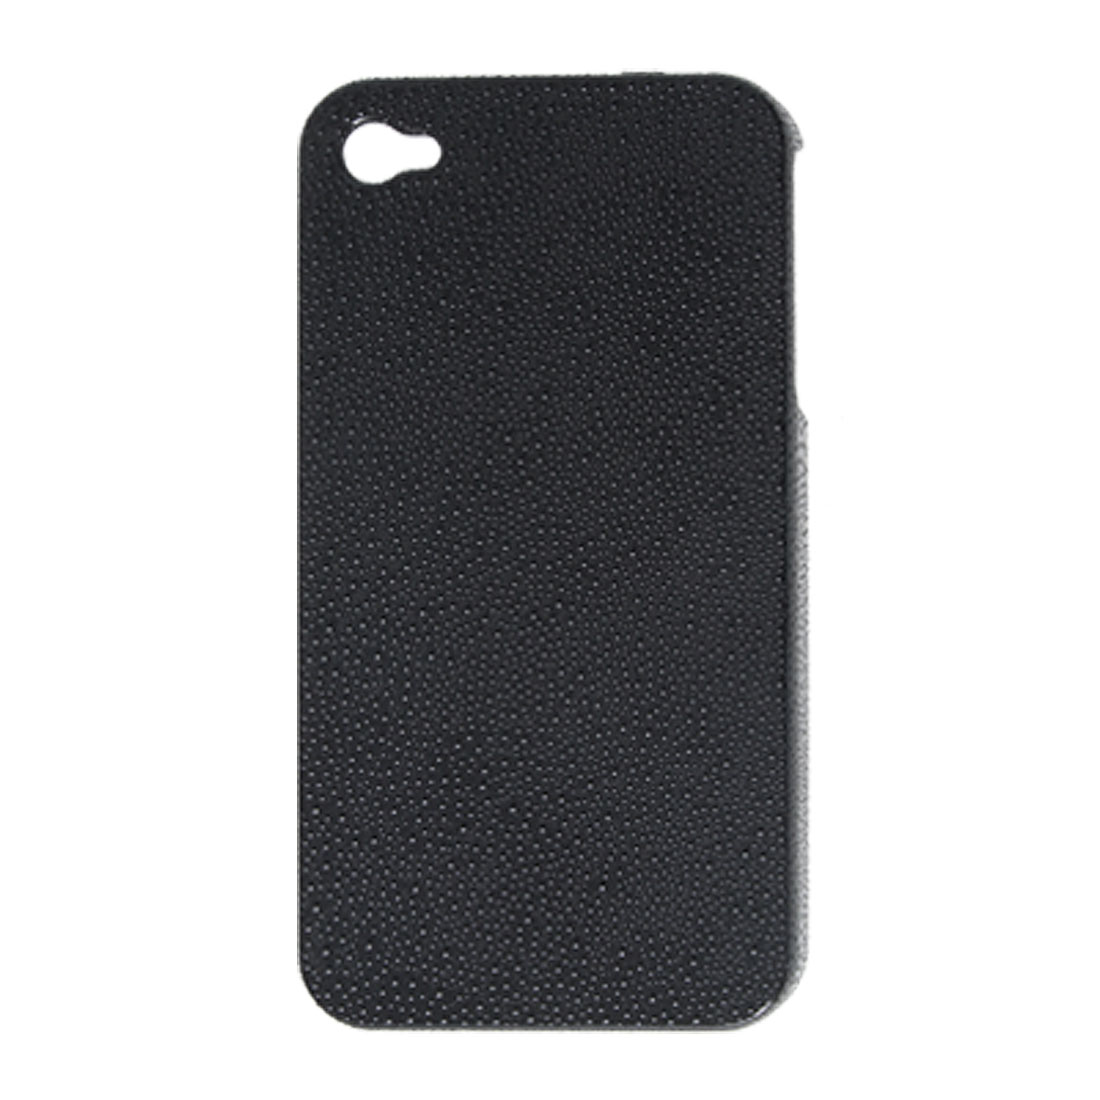 Black Hard Back Case Plastic Nonslip Cover for iPhone 4 4G